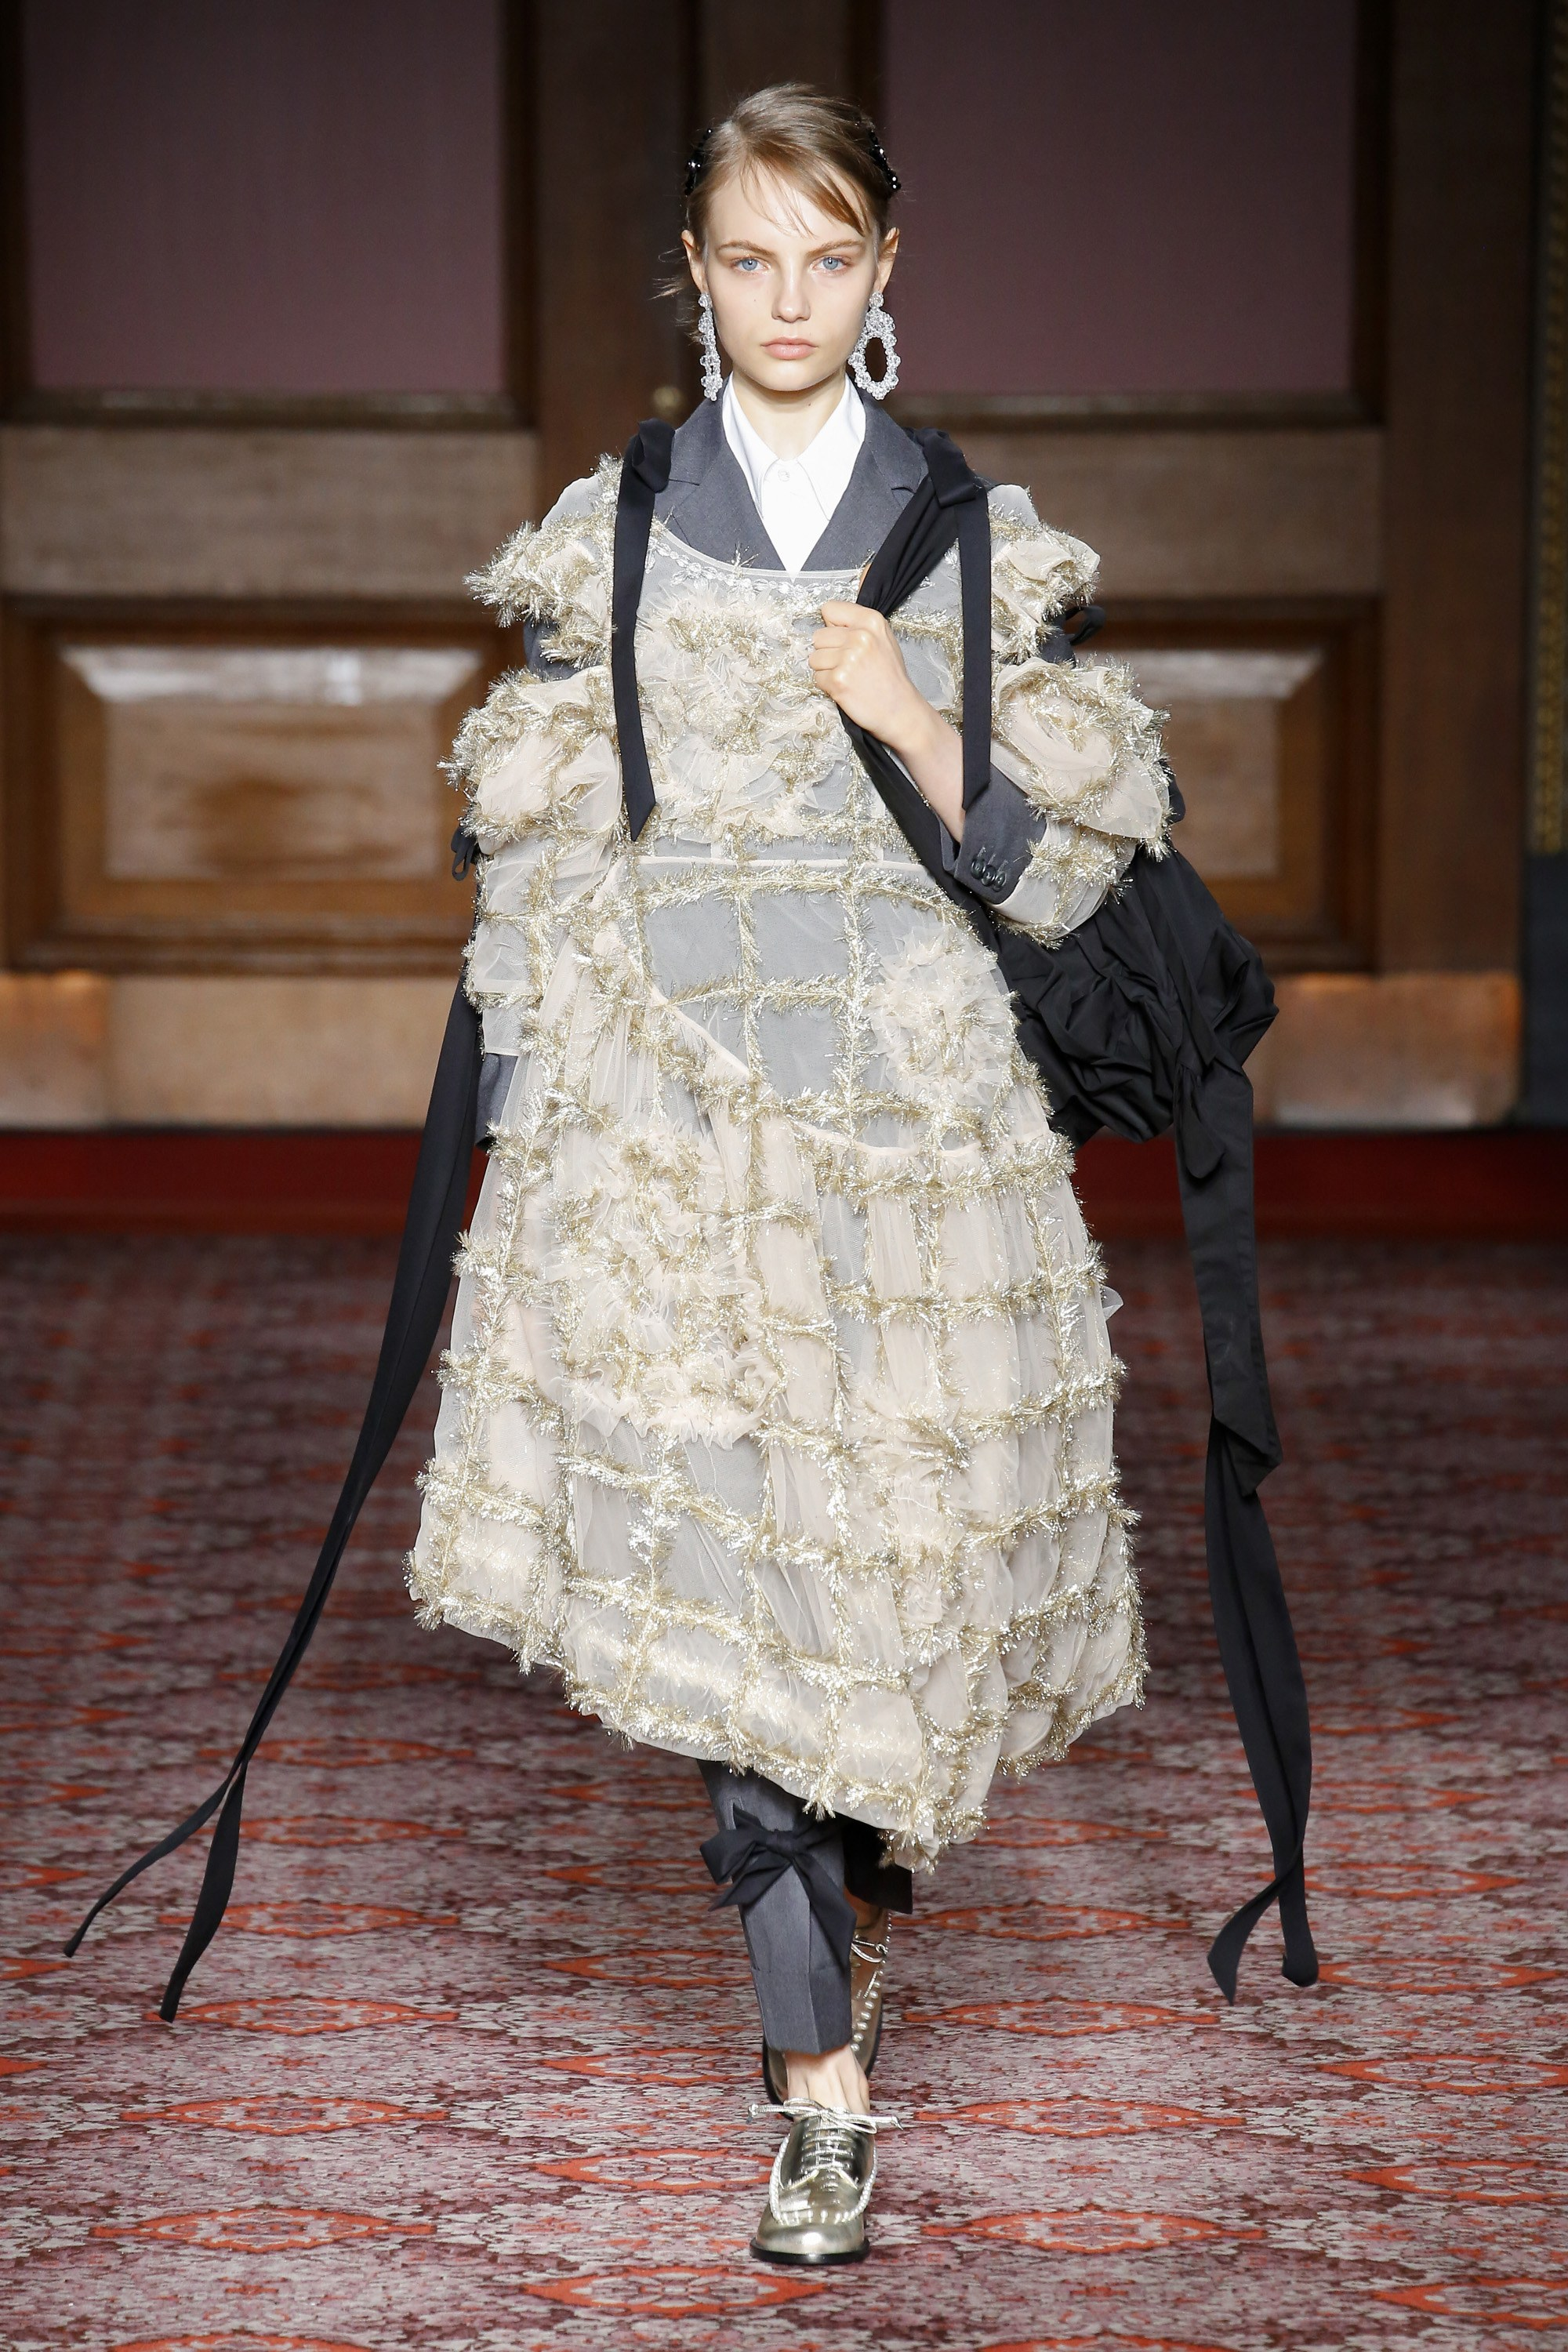 simone-rocha-london-fashion-week-fall-2018-rtw-12.jpg